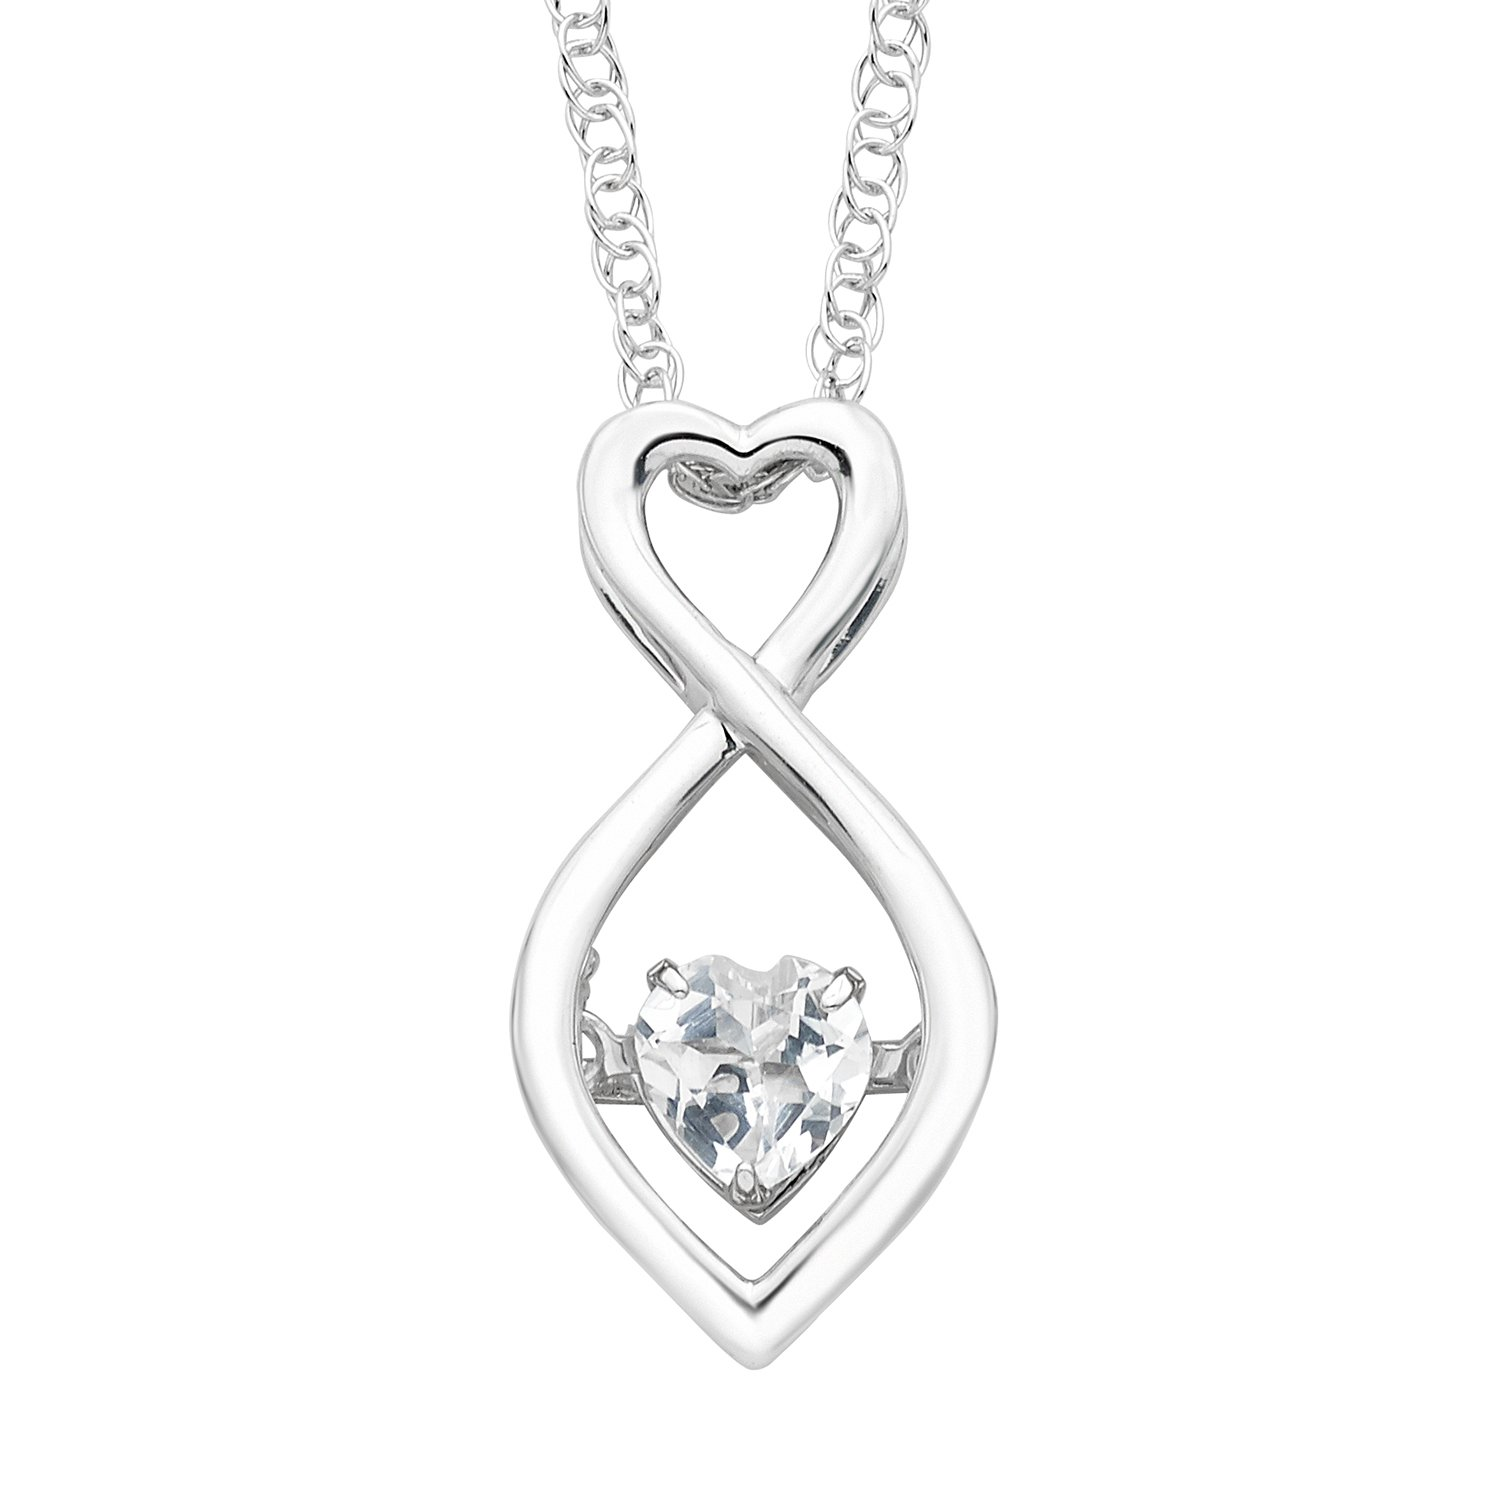 Boston Bay Diamonds 925 Sterling Silver White Topaz Birthstone Pendant Necklace, 18''